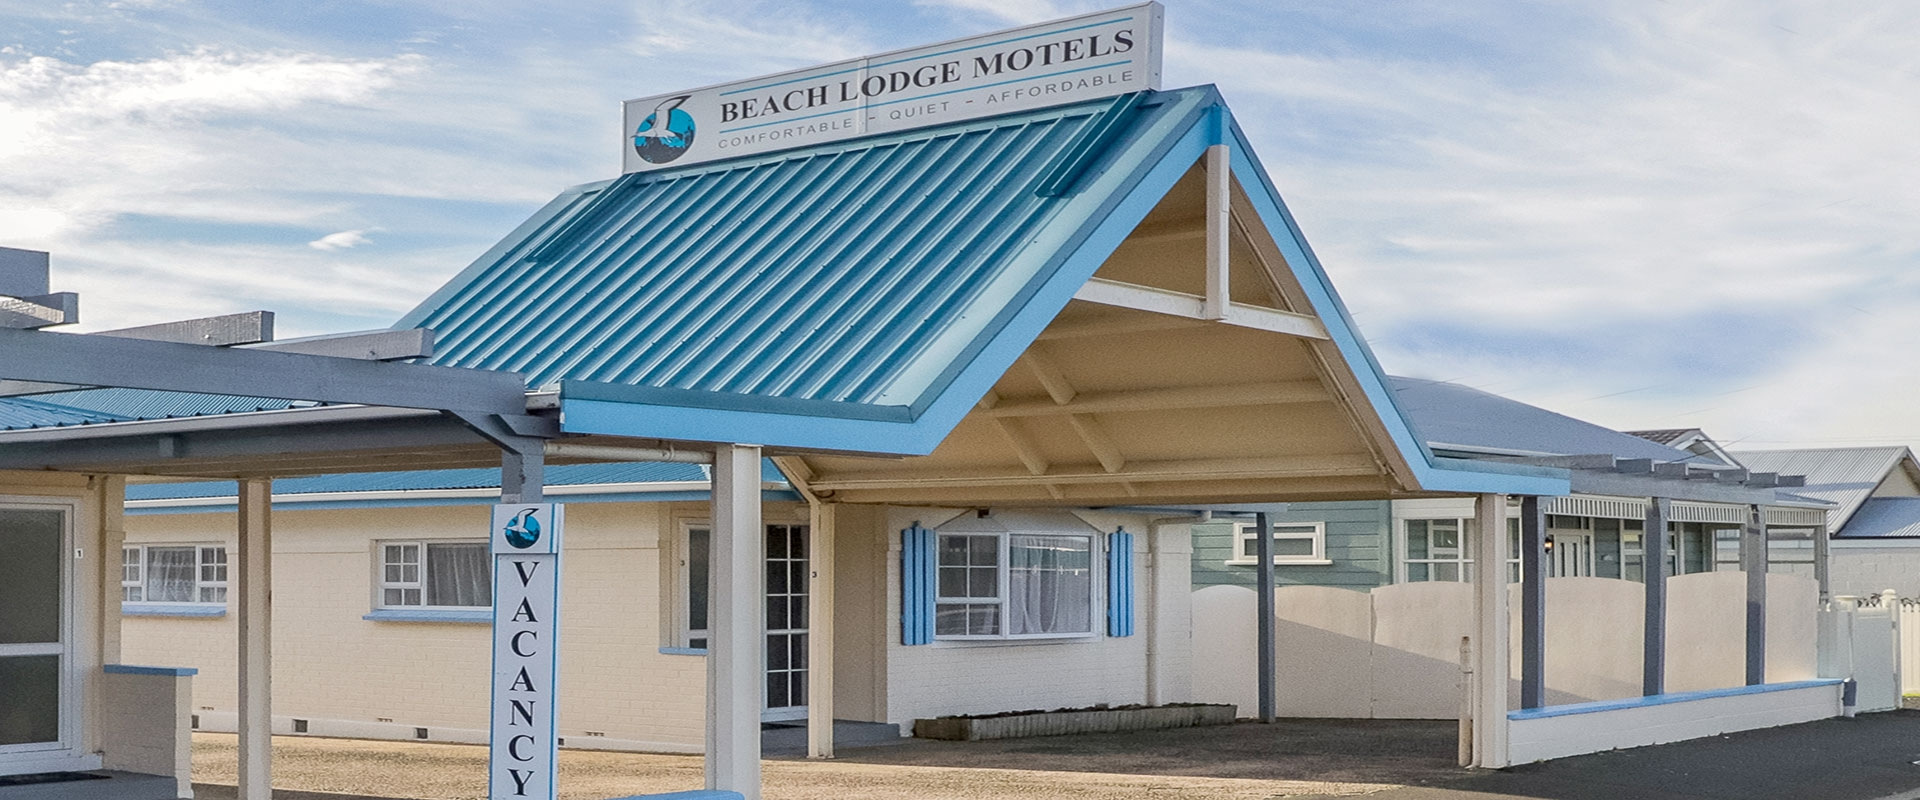 beach lodge motels